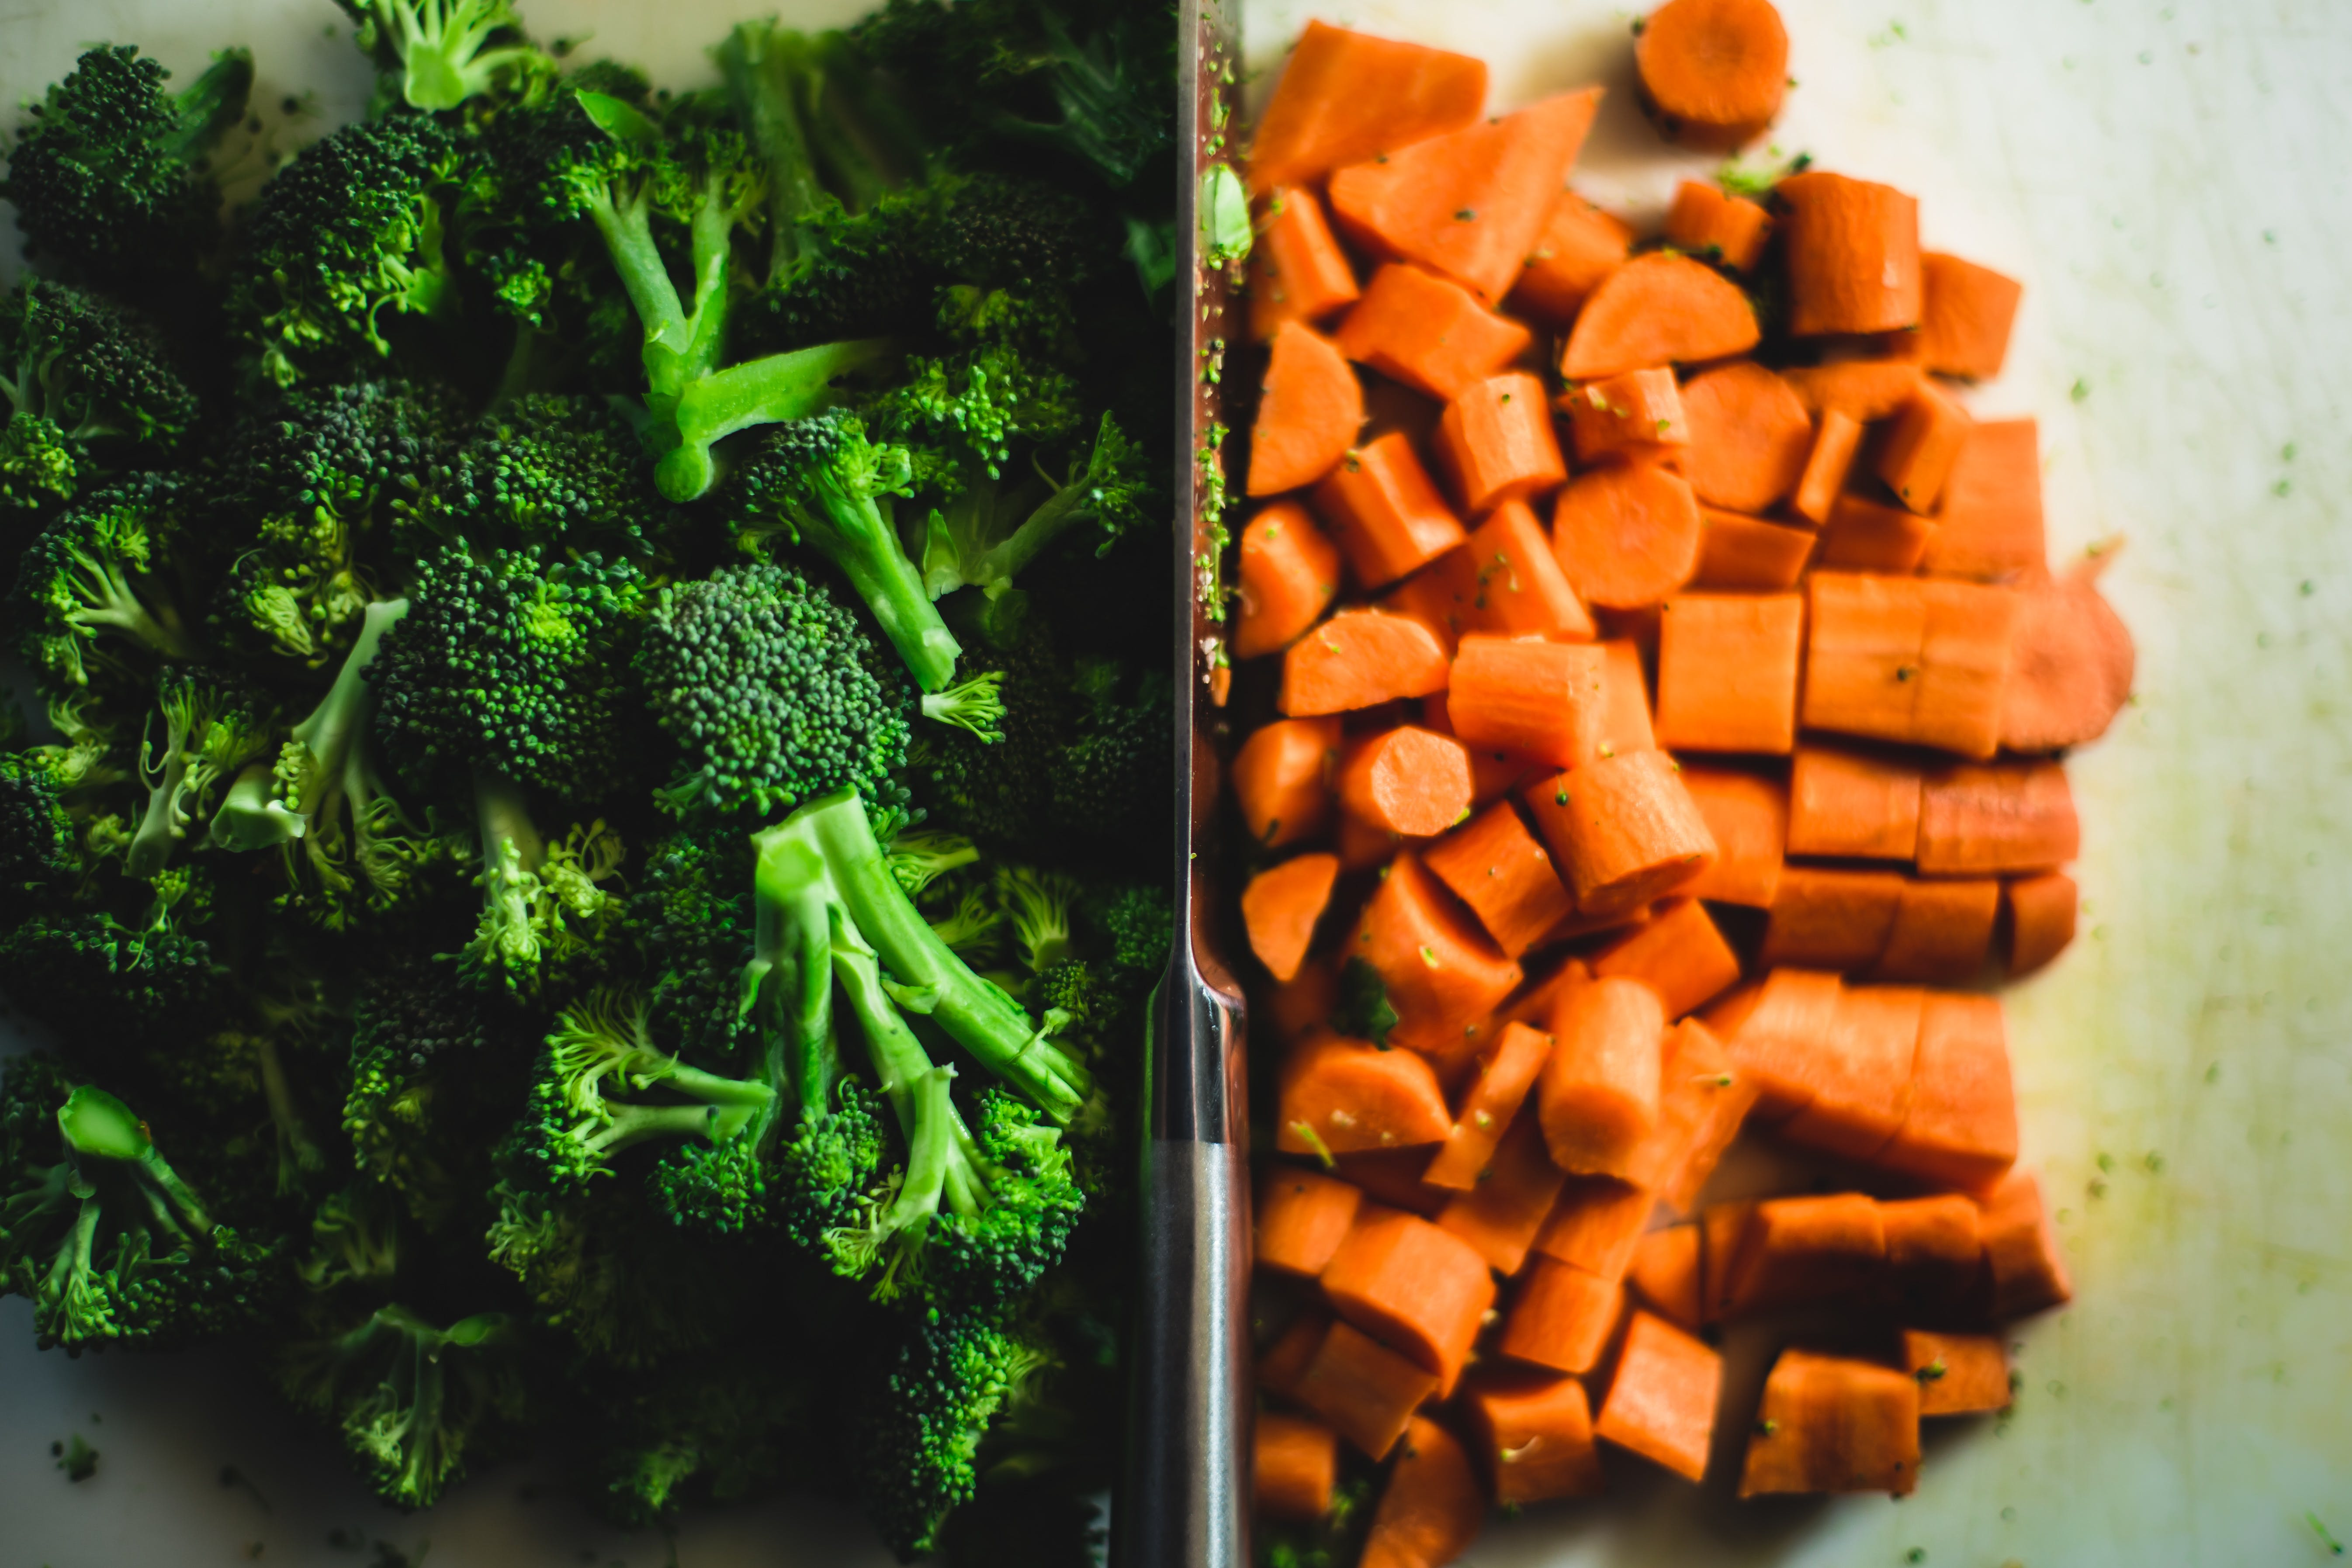 Gray Stainless Steel Knife Between Broccoli and Carrots in Close-up Photography